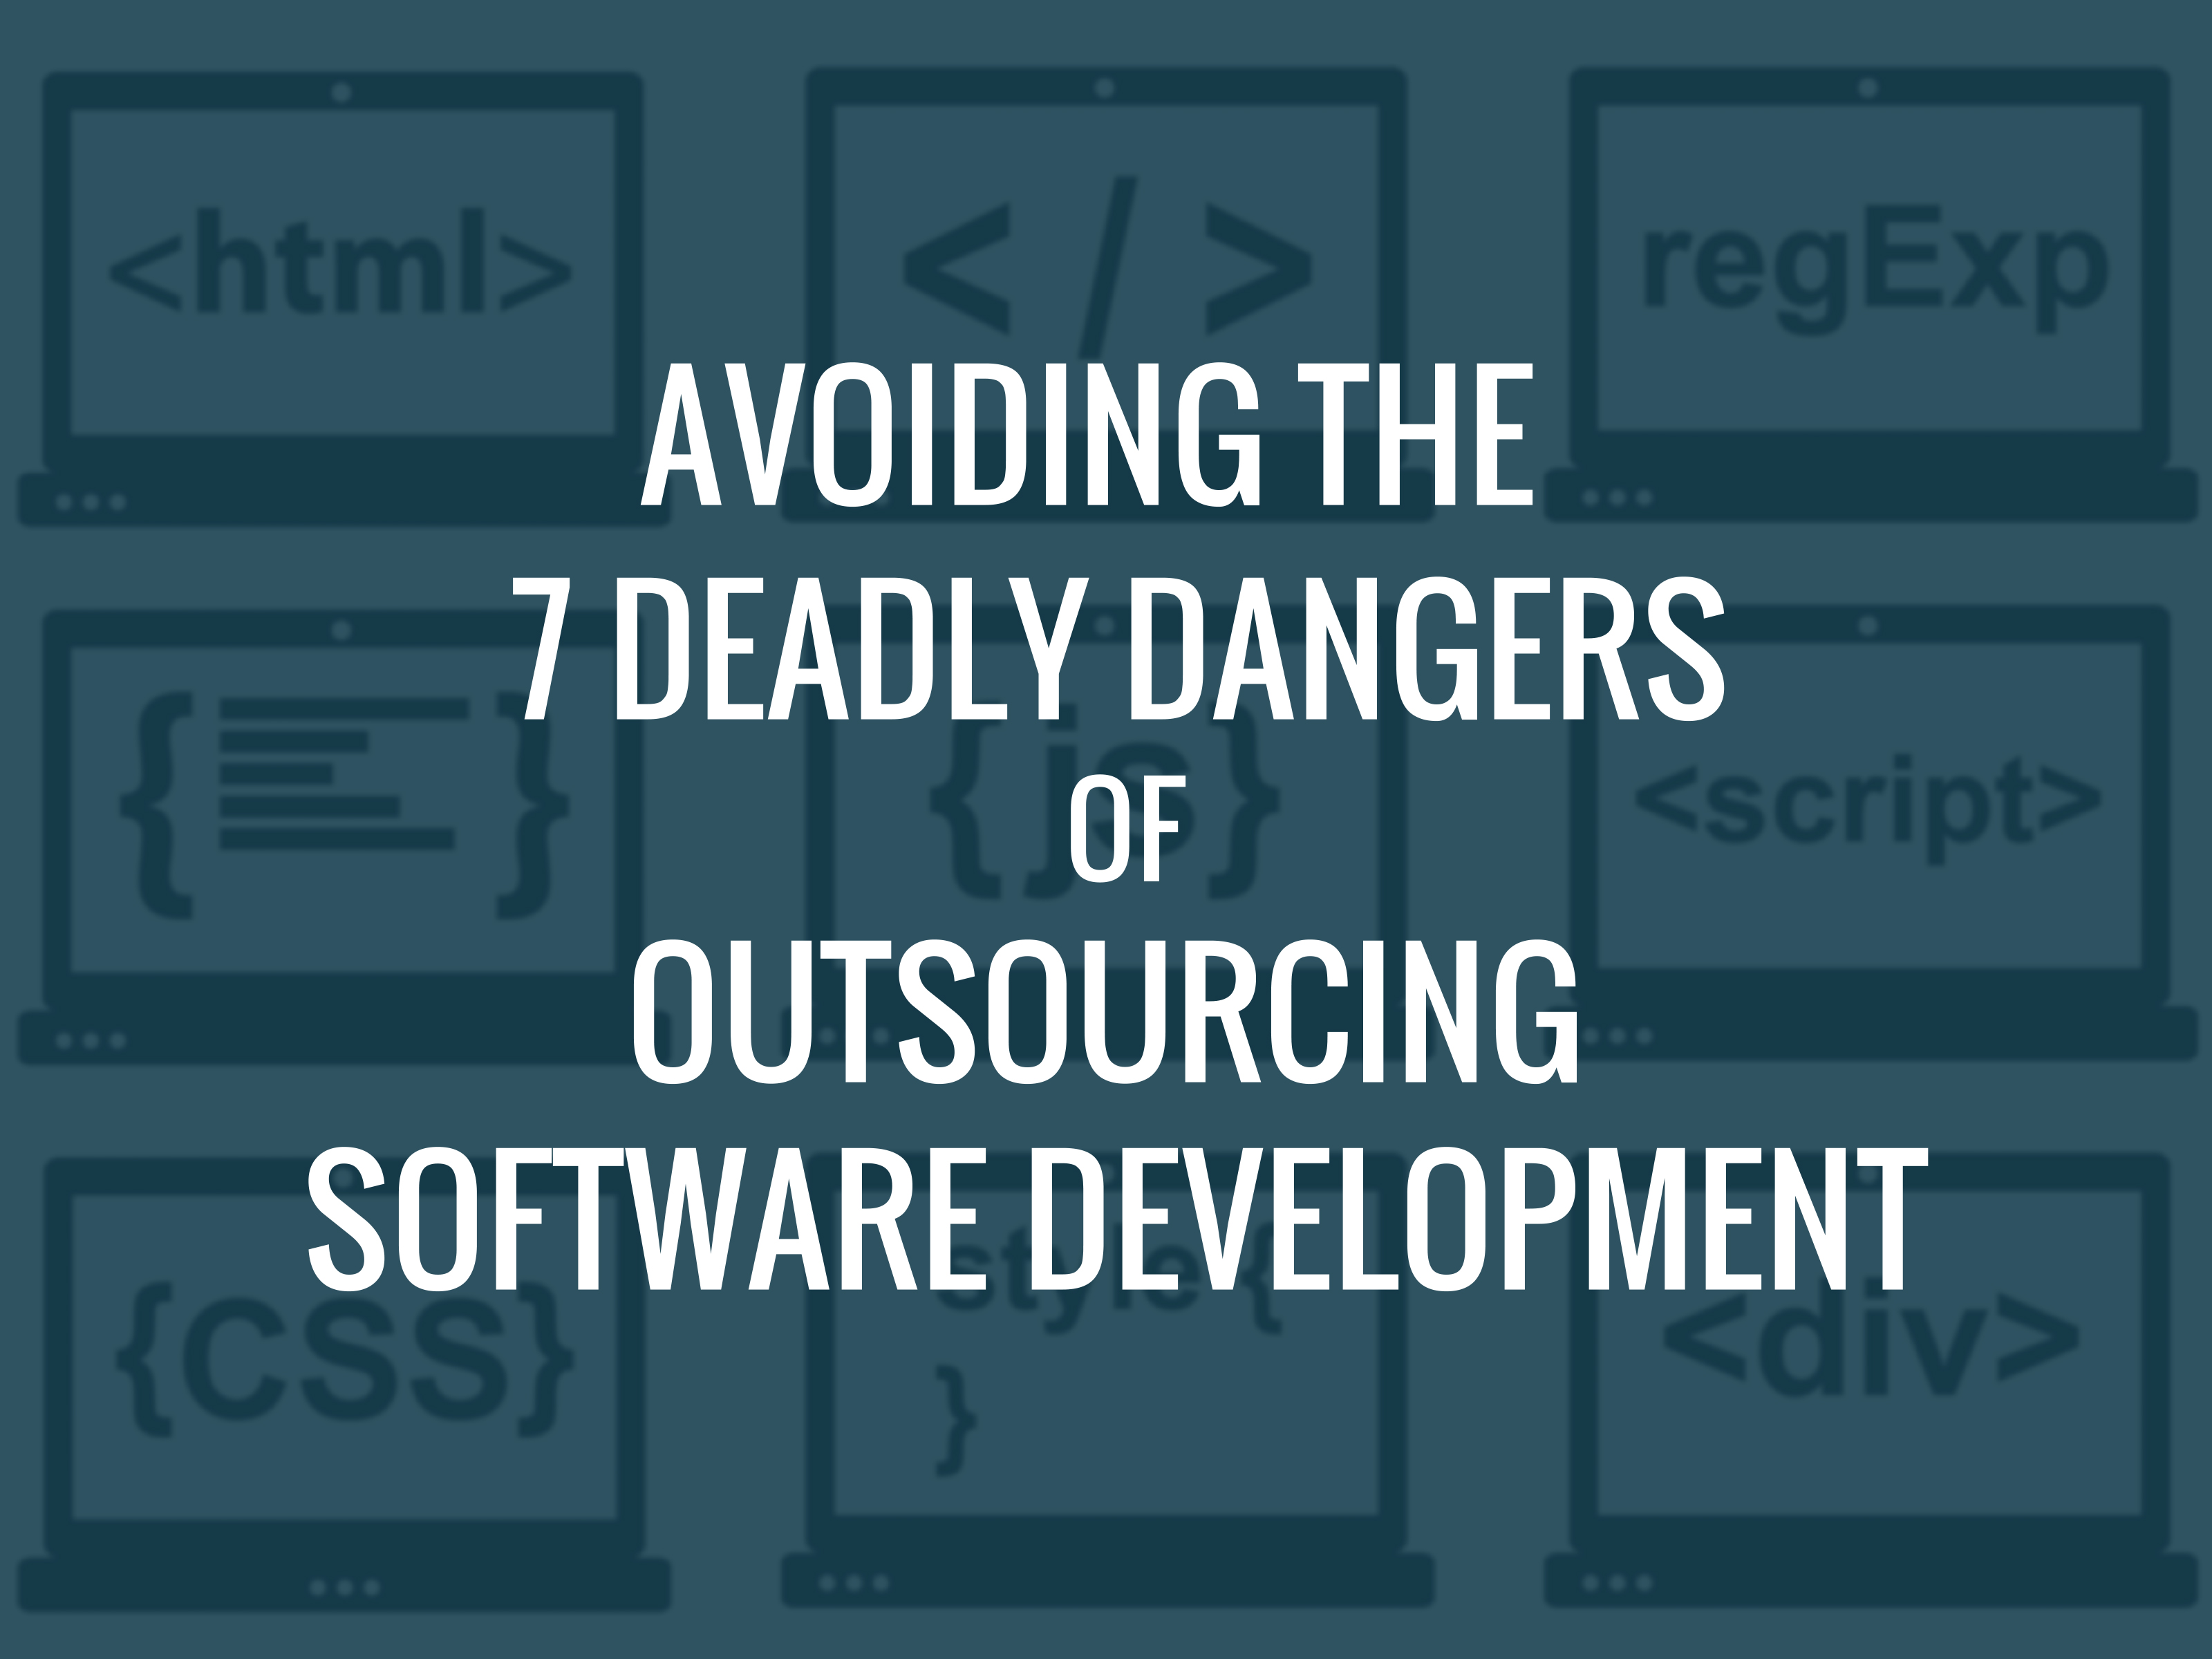 Accelerance - Avoiding the 7 Deadly Dangers of Outsourcing Software Development